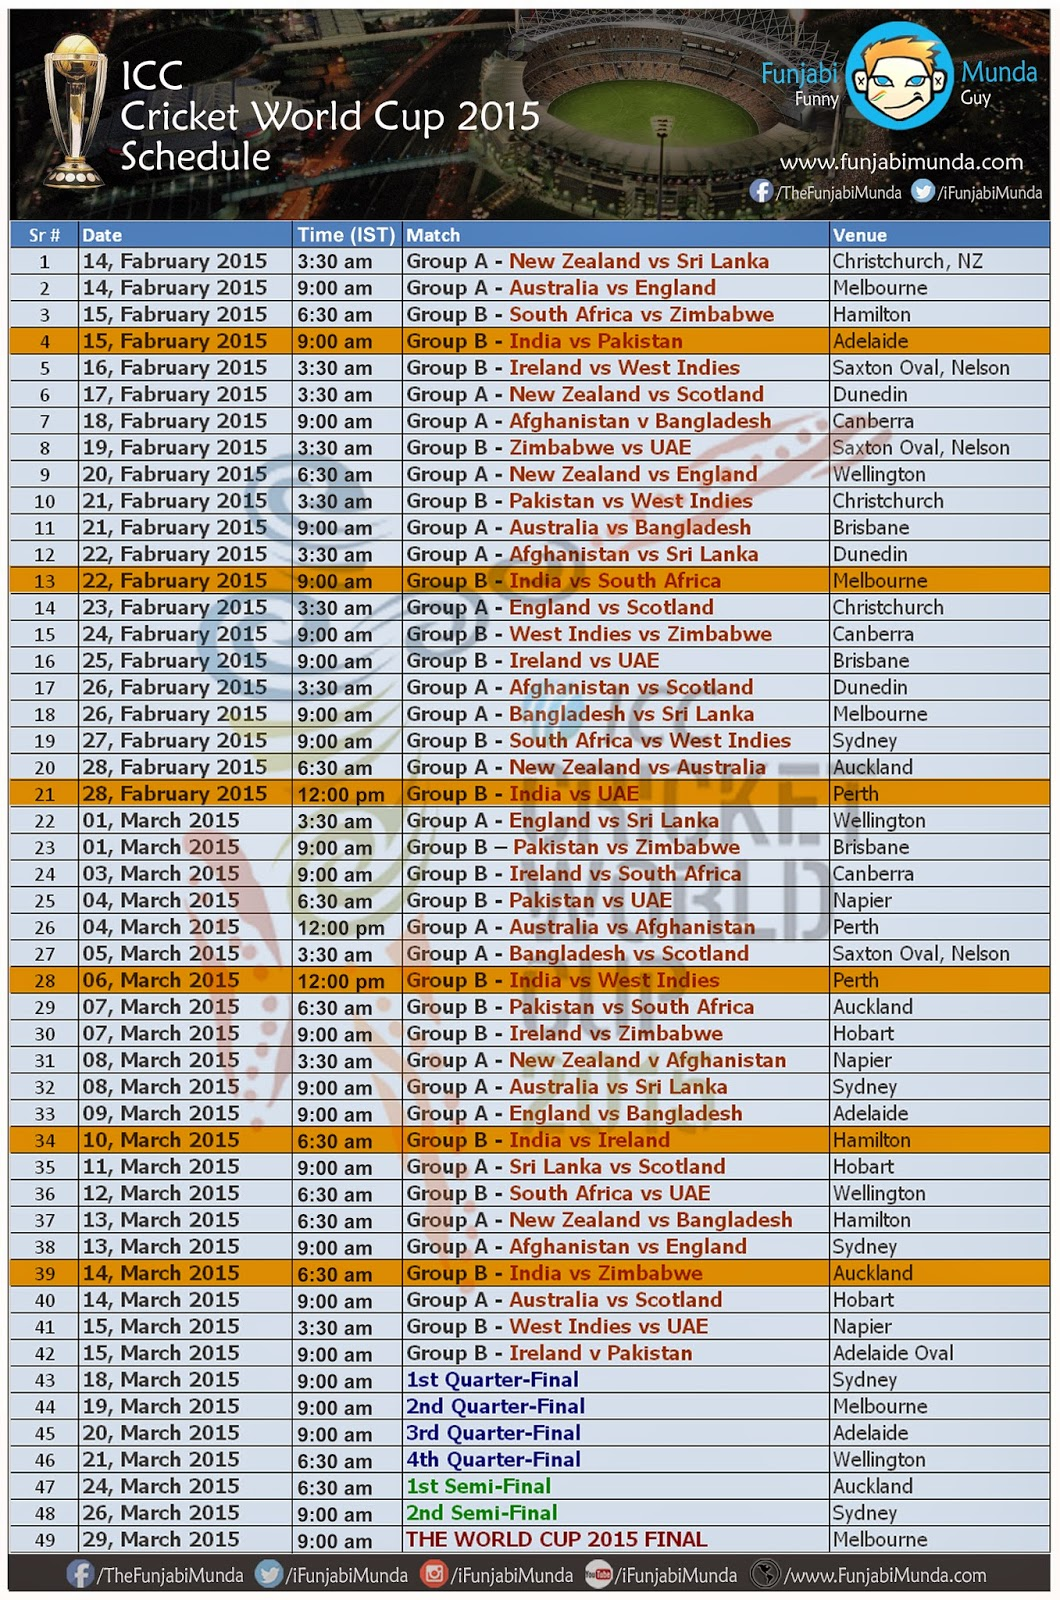 Icc World Cup 2015 Secdule | Search Results | Calendar 2015